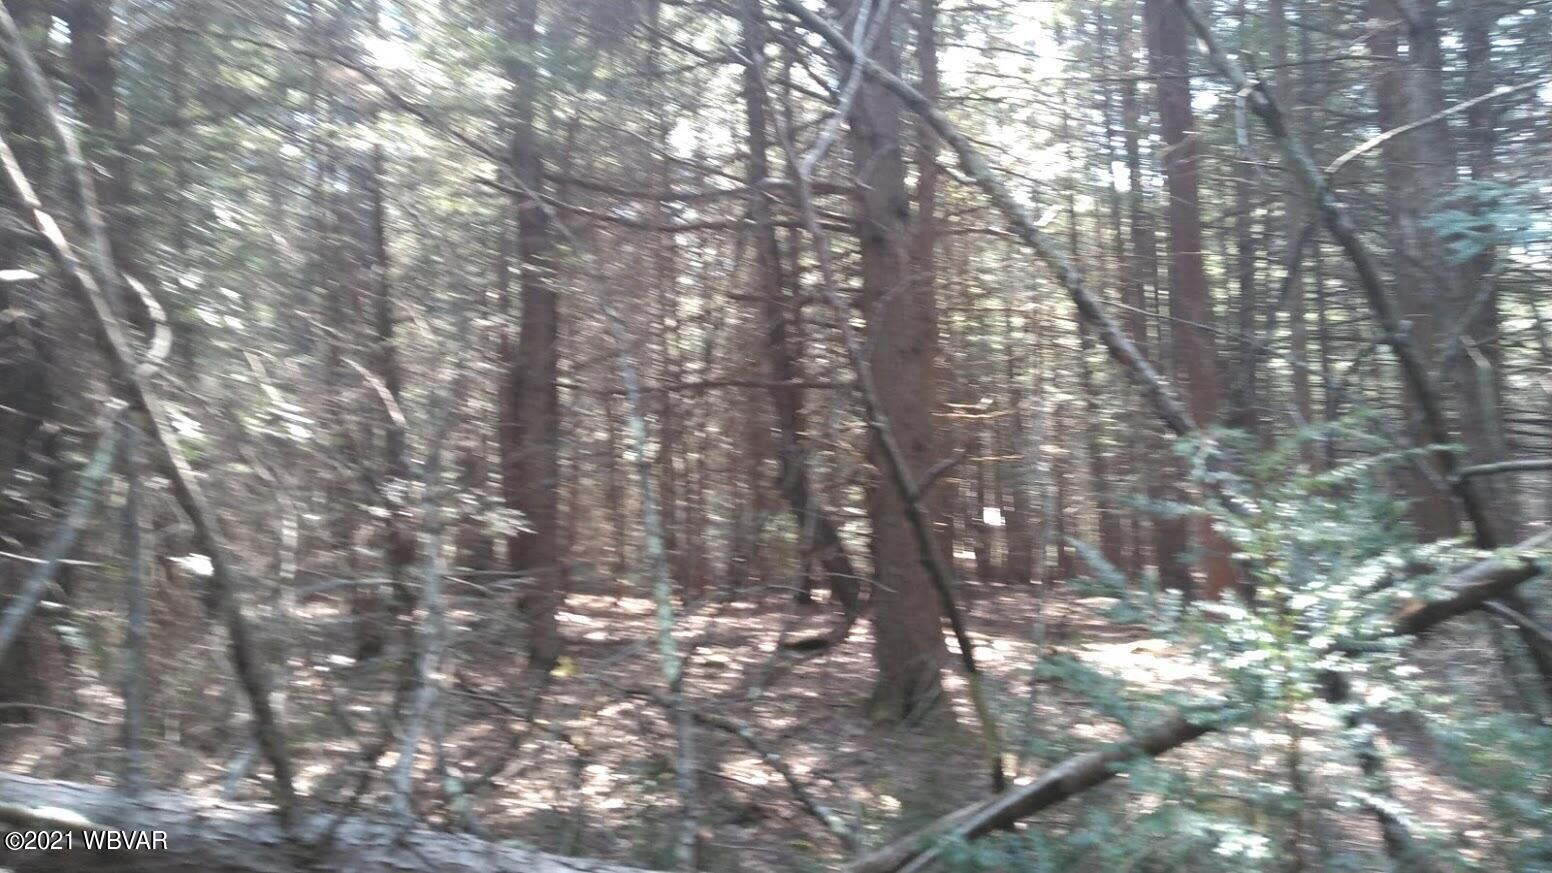 4026 QUEENS RUN, Woolrich, PA 17779, ,Land,For sale,QUEENS,WB-92284